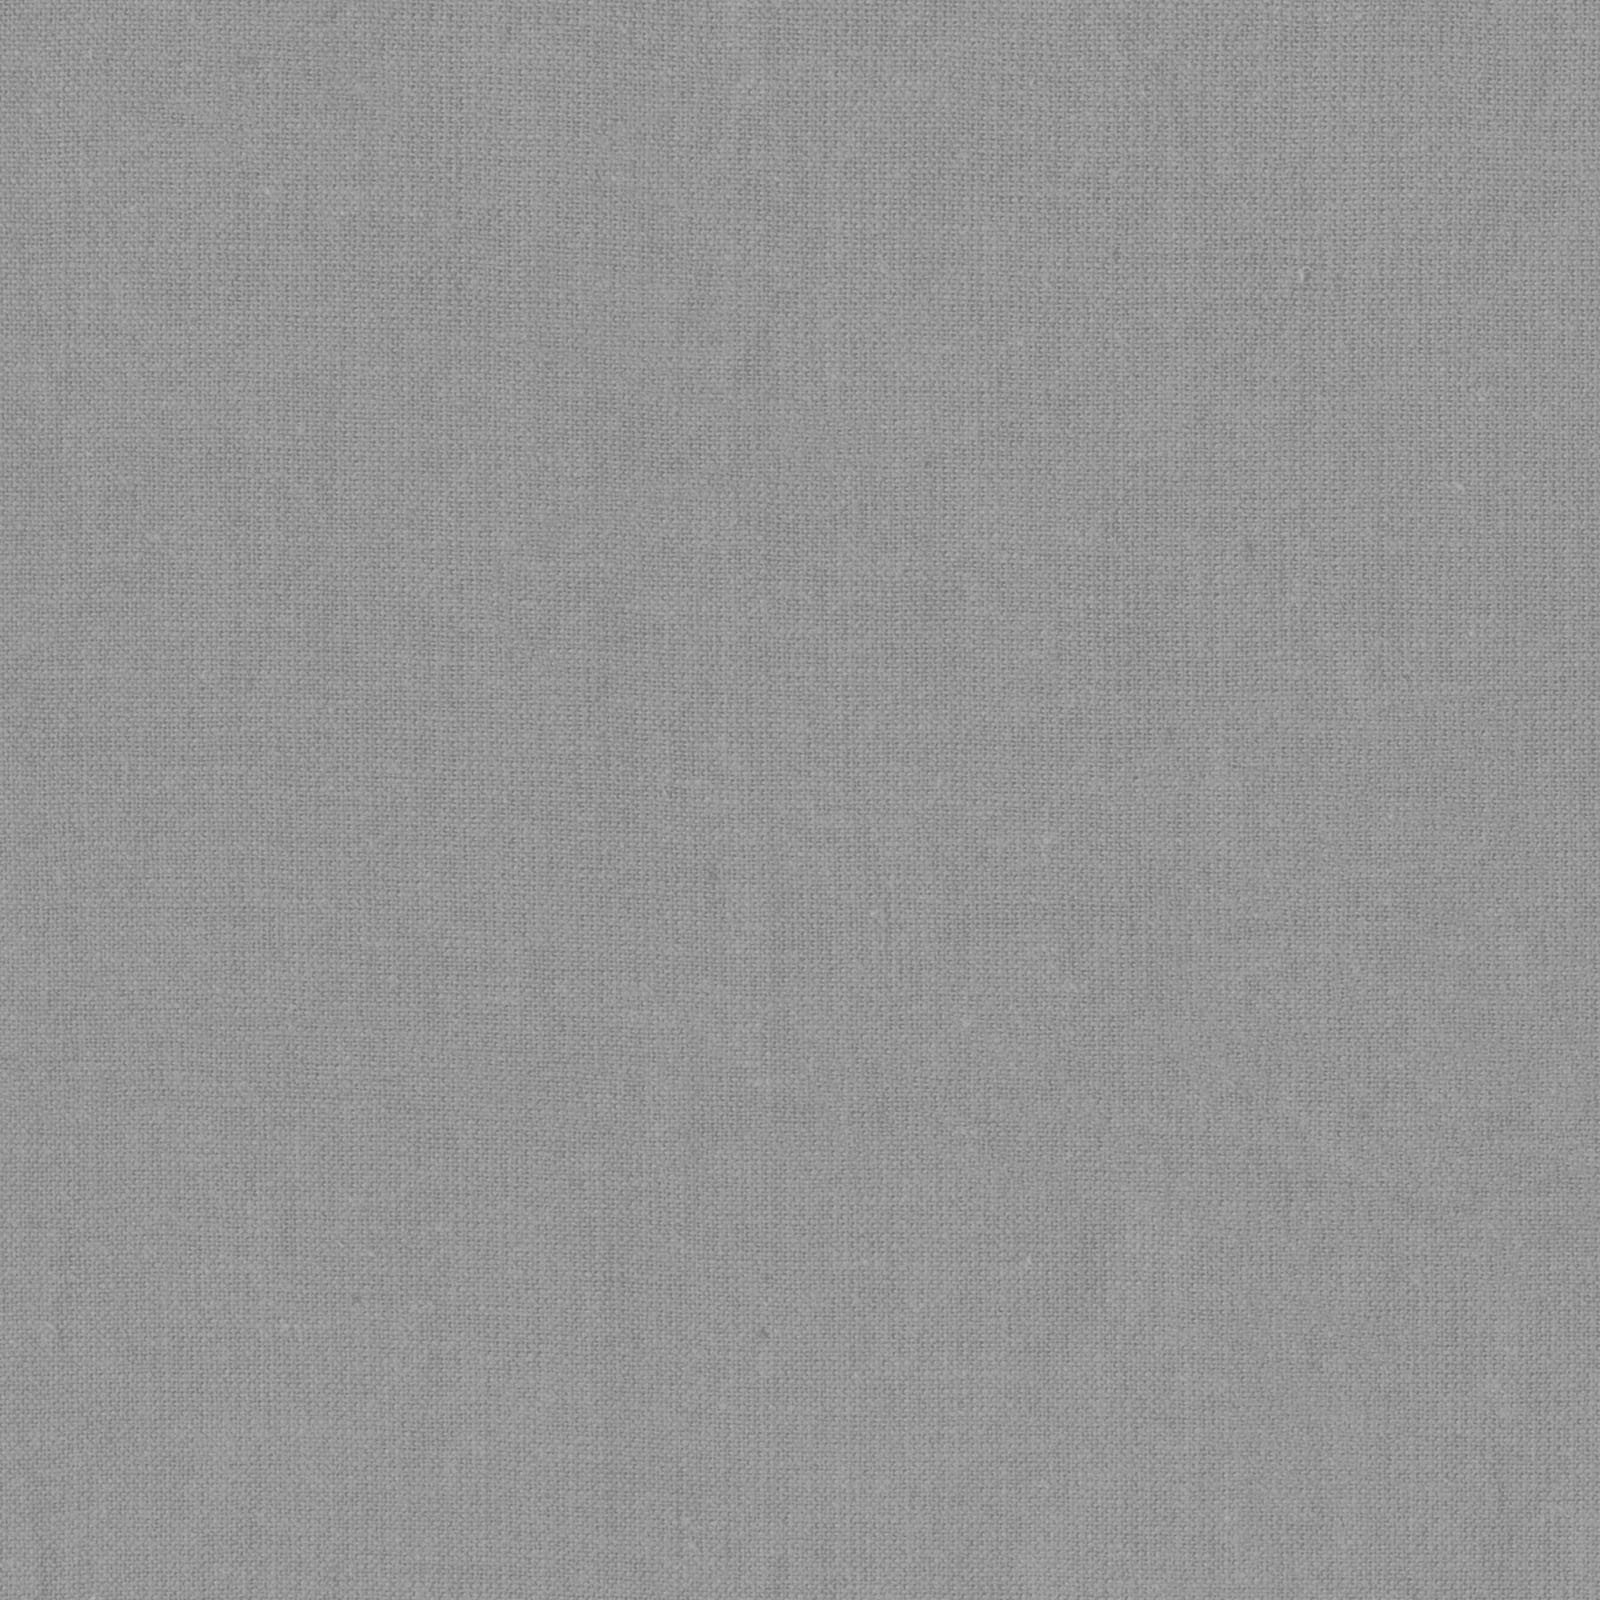 EOB - 1 yard 9 - Peppered Cottons - Aluminum - Wide Back